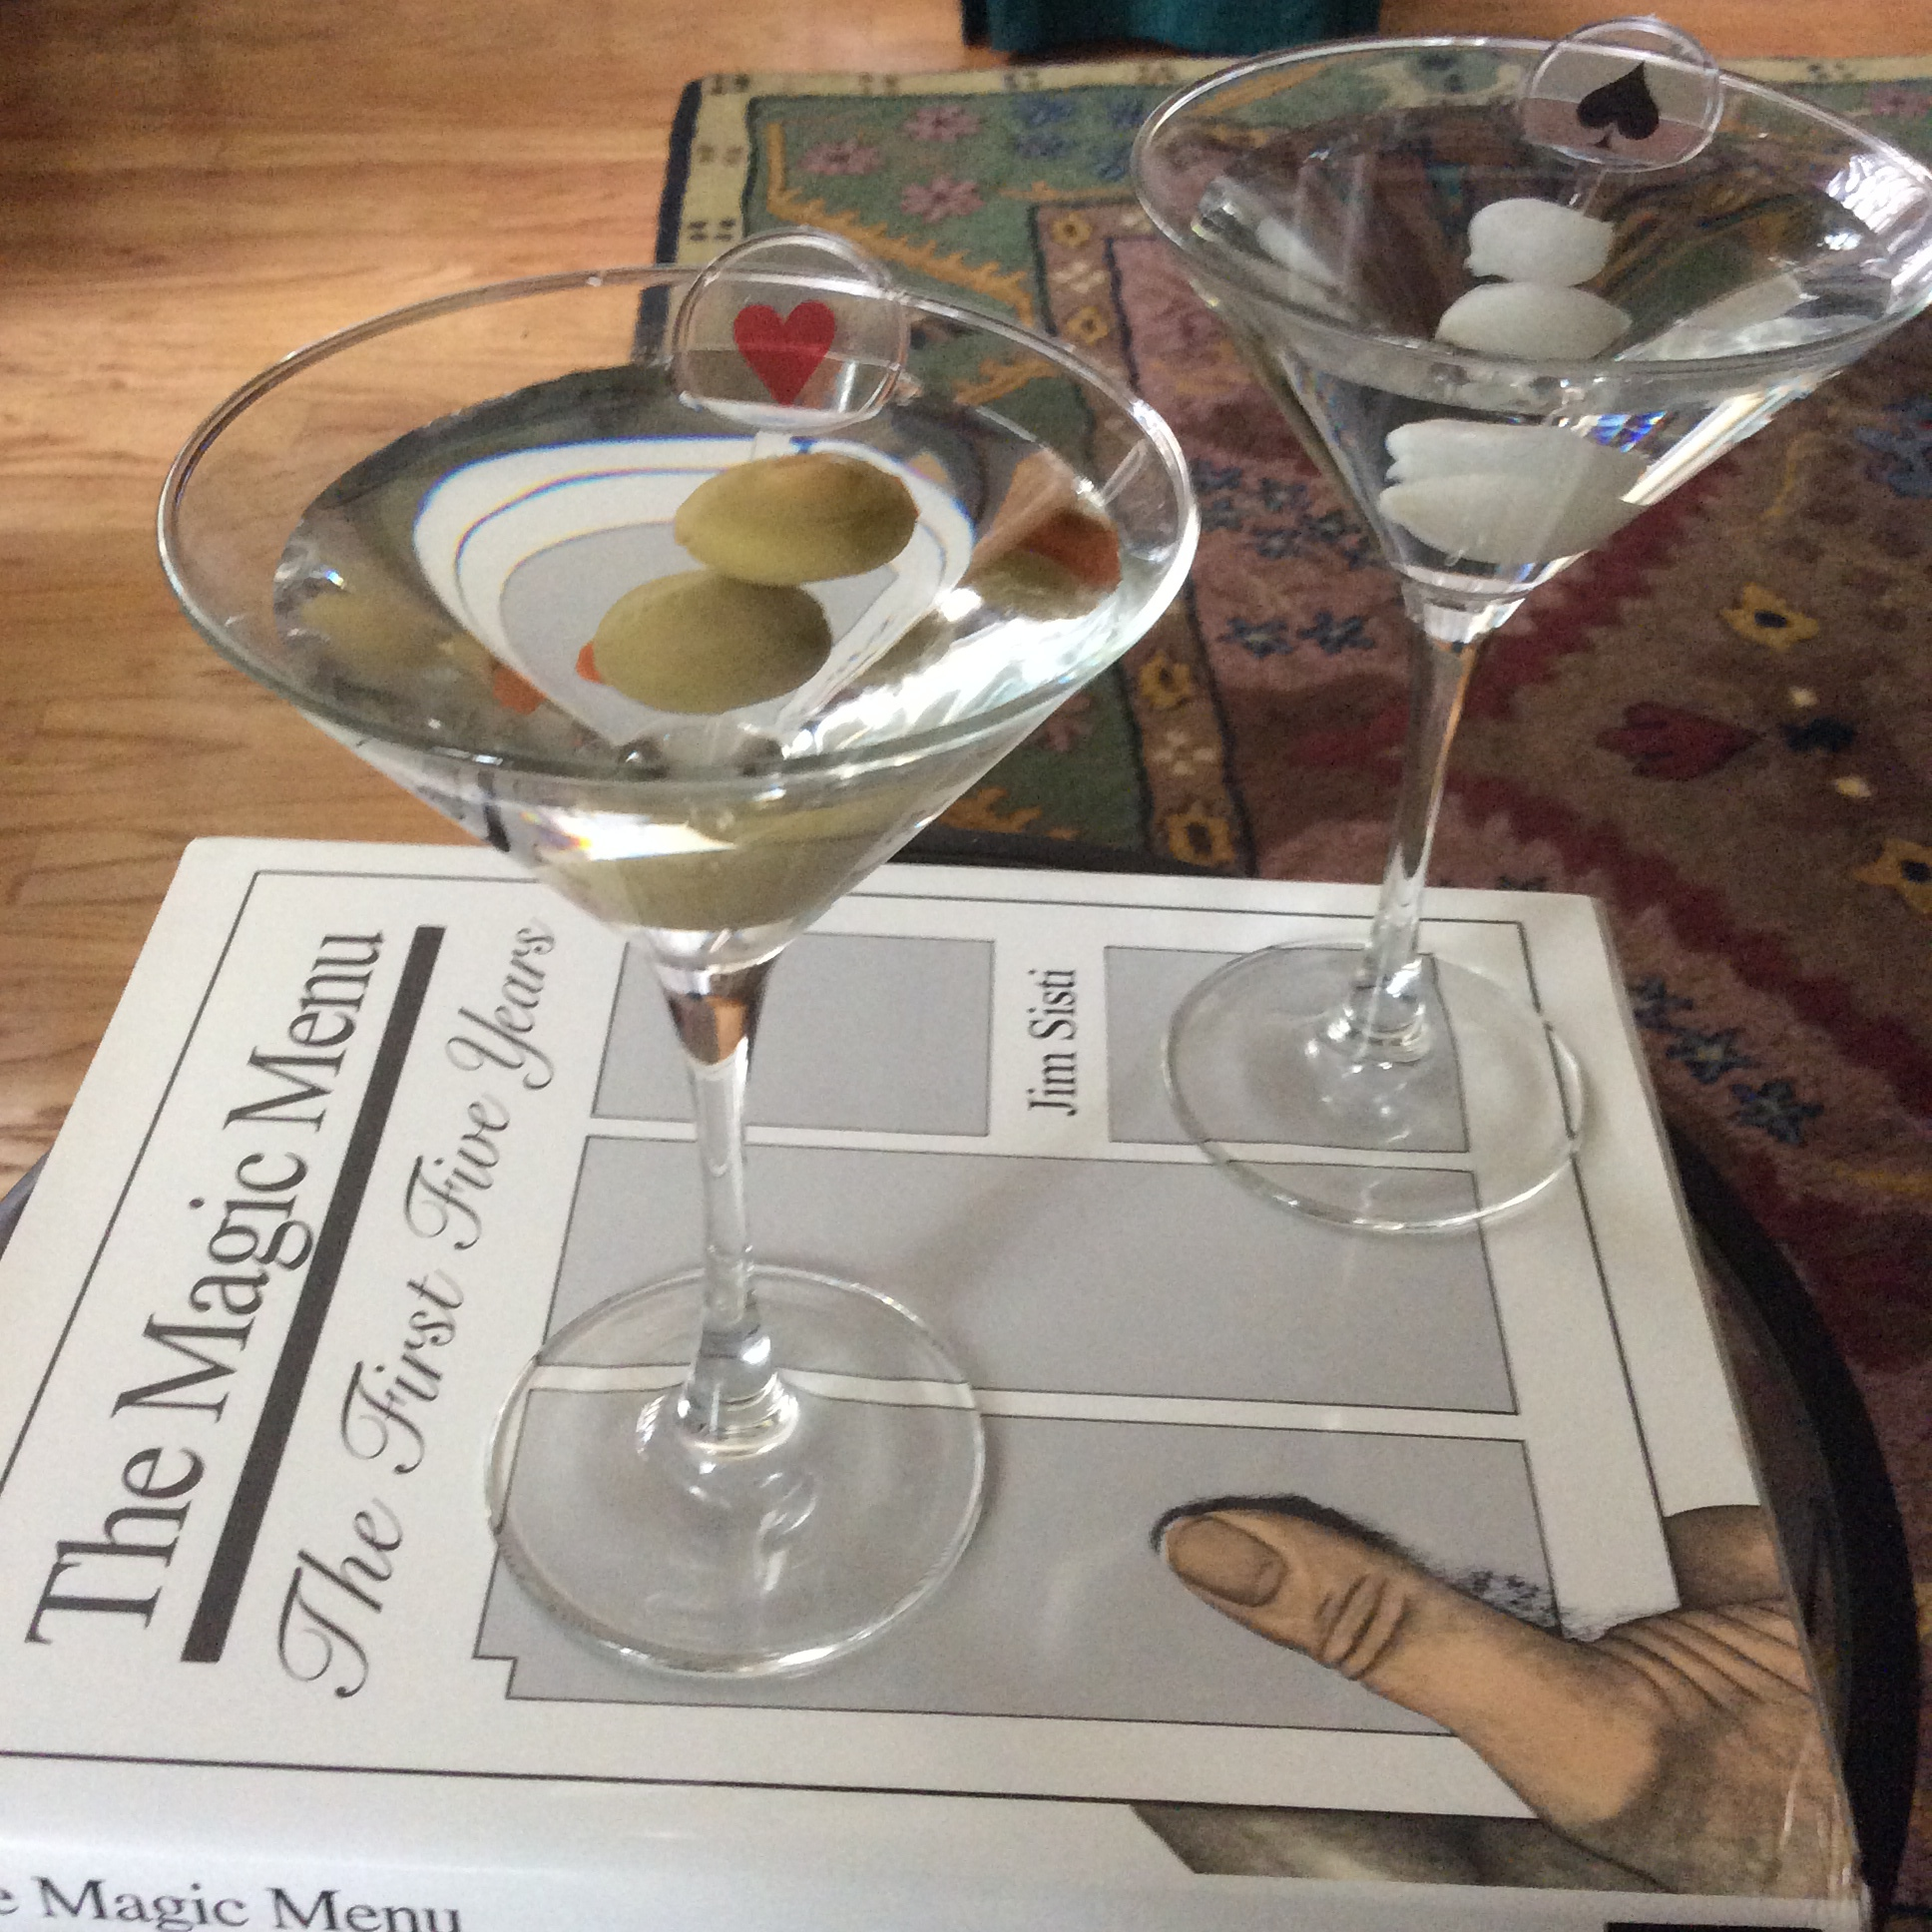 Martinis on the Menu